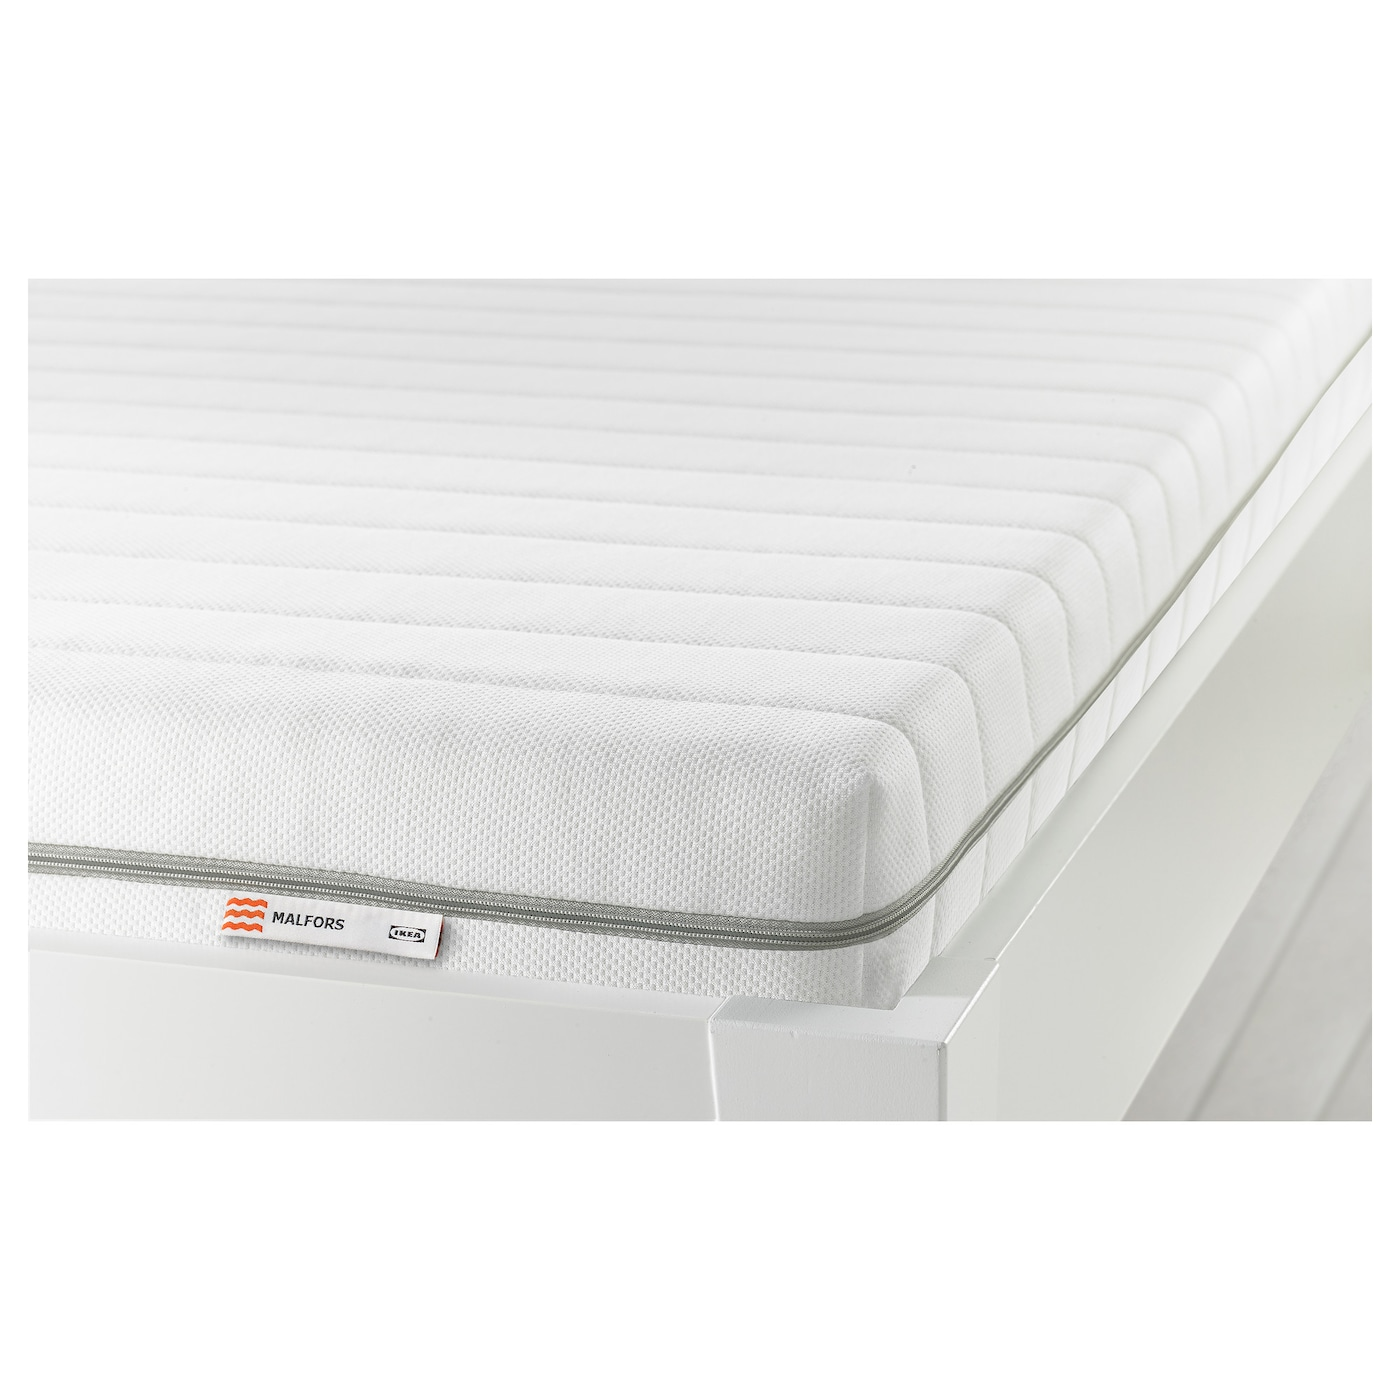 MALFORS Foam mattress Medium firm white Standard Double IKEA